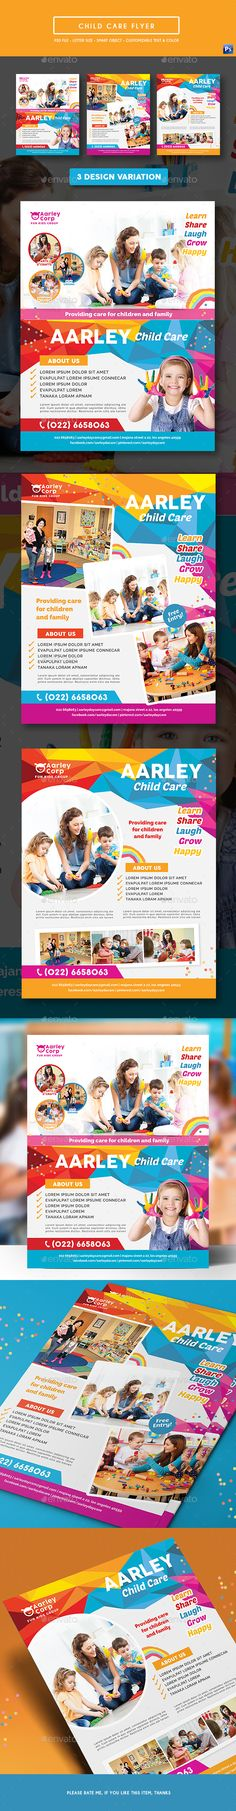 Child Care #Flyer - #Corporate Flyers Download here: https://graphicriver.net/item/child-care-flyer/19589403?ref=alena994